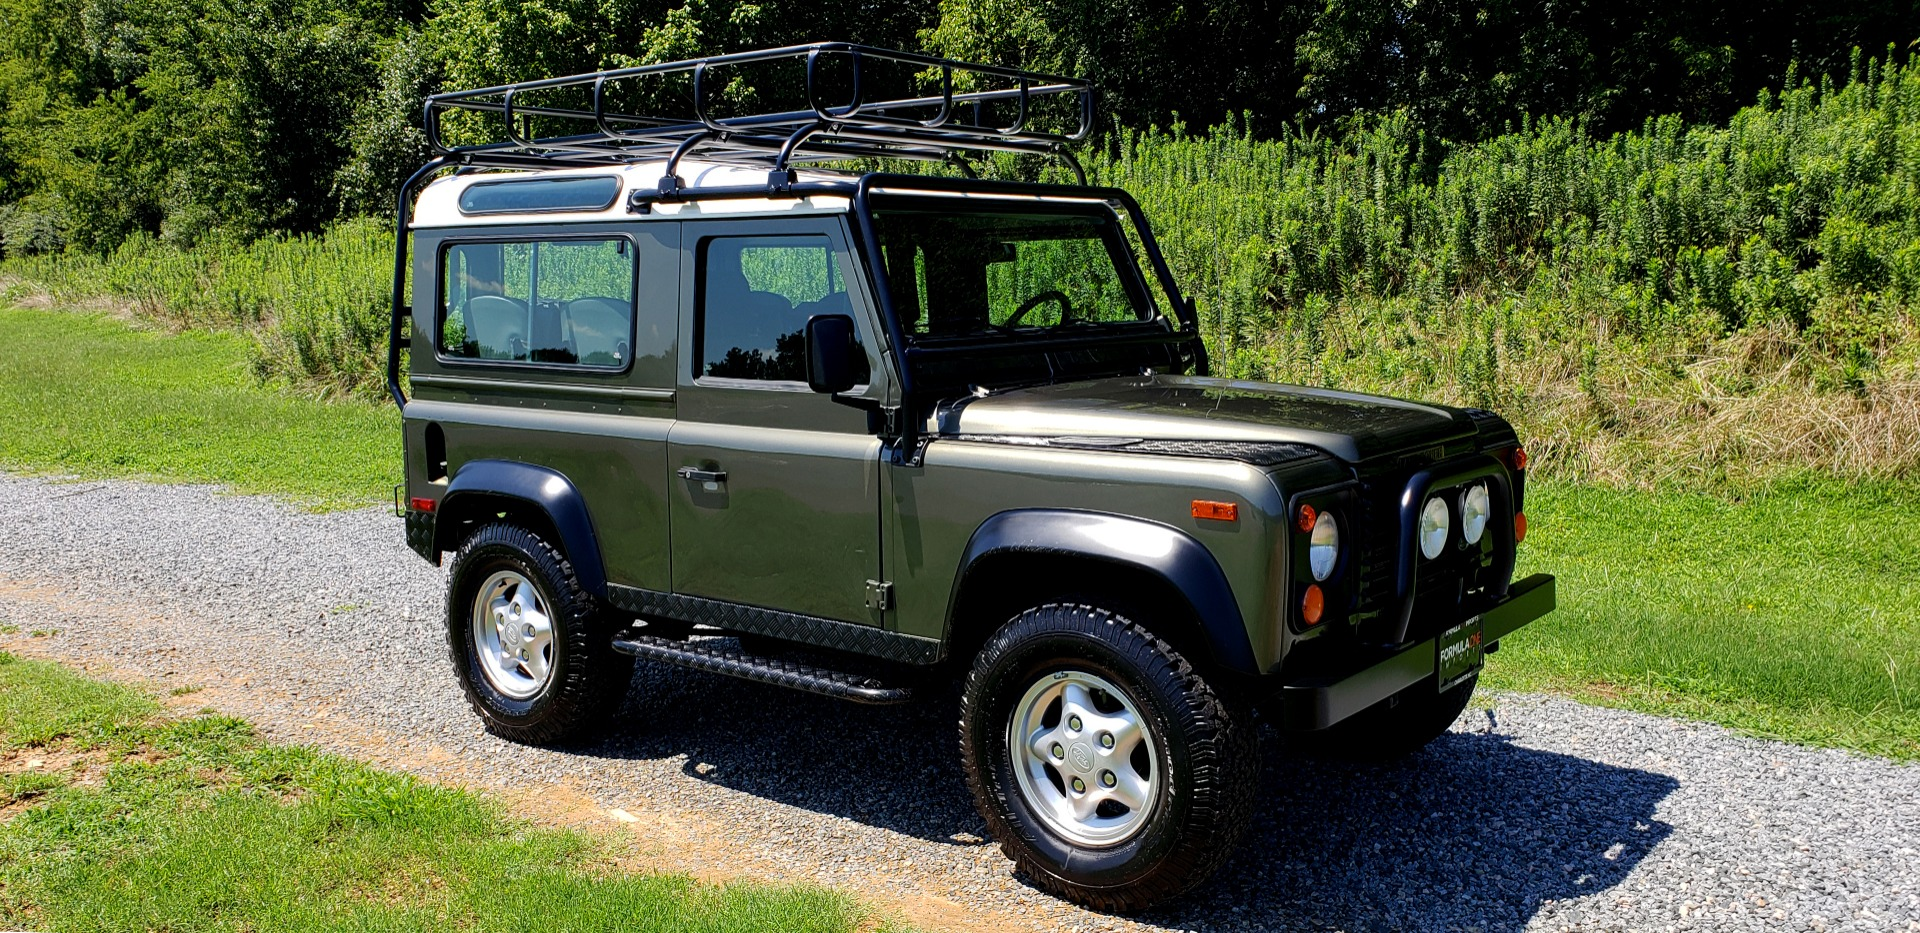 Used 1997 Land Rover DEFENDER 90 LIMITED EDITION / HARD-TOP / 4WD / FULLY RESTORED / LOW MILES for sale $119,000 at Formula Imports in Charlotte NC 28227 7